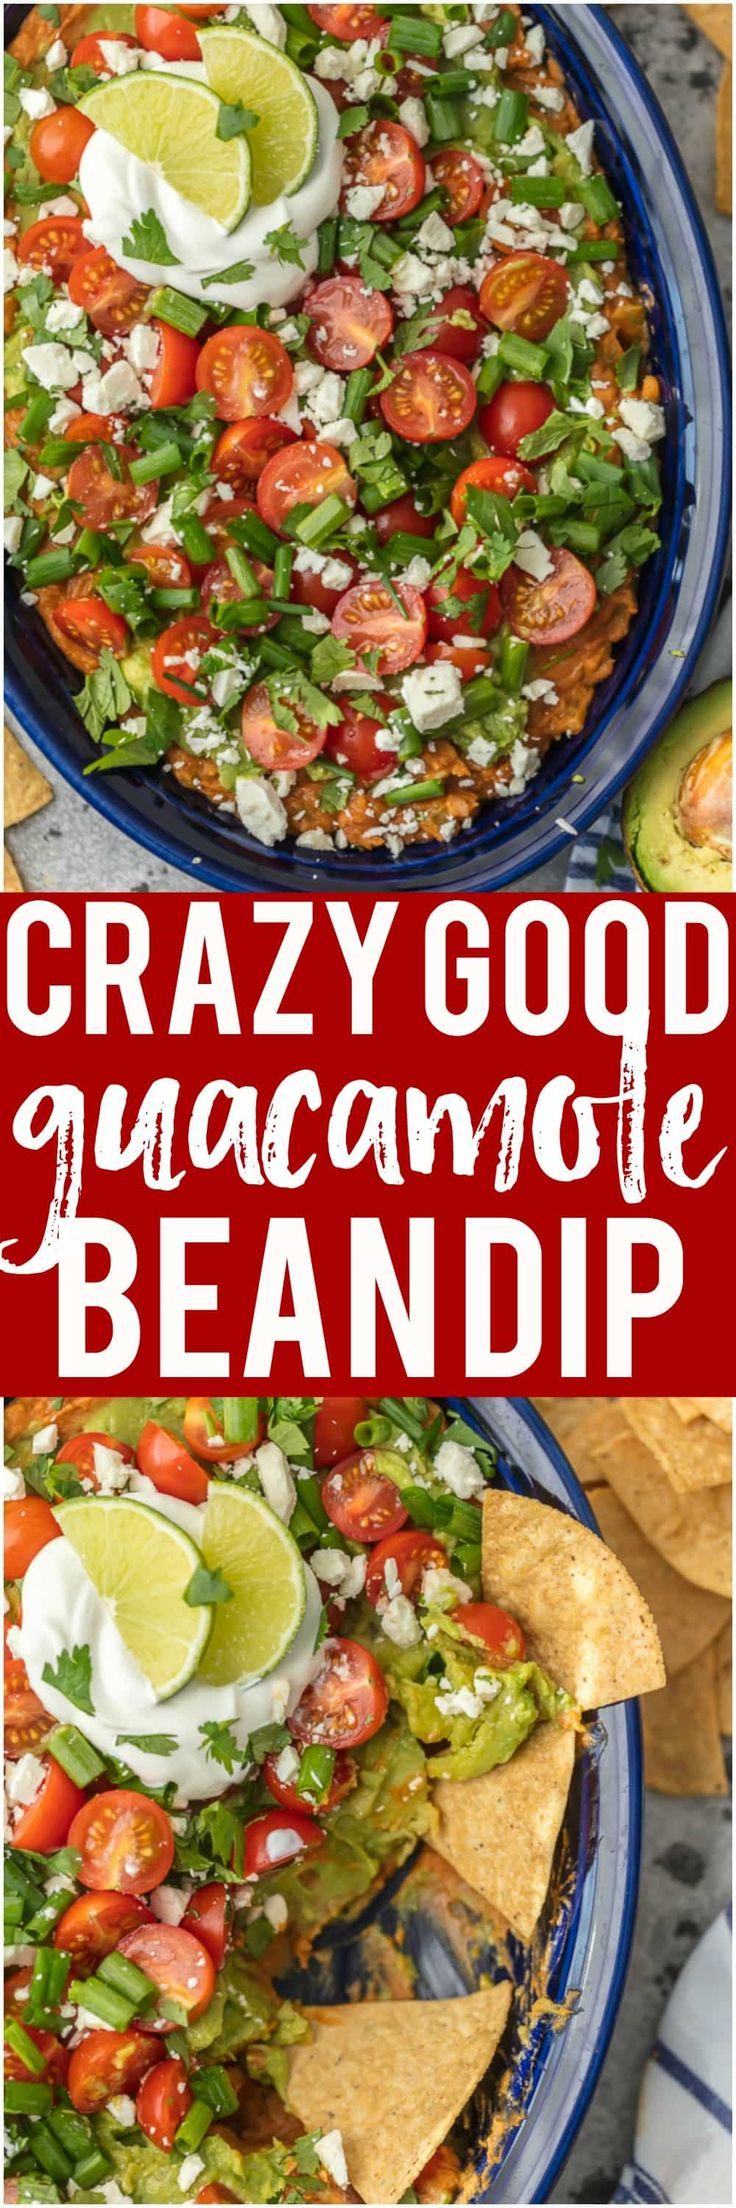 This CRAZY GOOD GUACAMOLE BEAN DIP is layered with spicy refried beans, guacamole, green onion, tomatoes, feta, and more. SO delicious and made in minutes! via @beckygallhardin